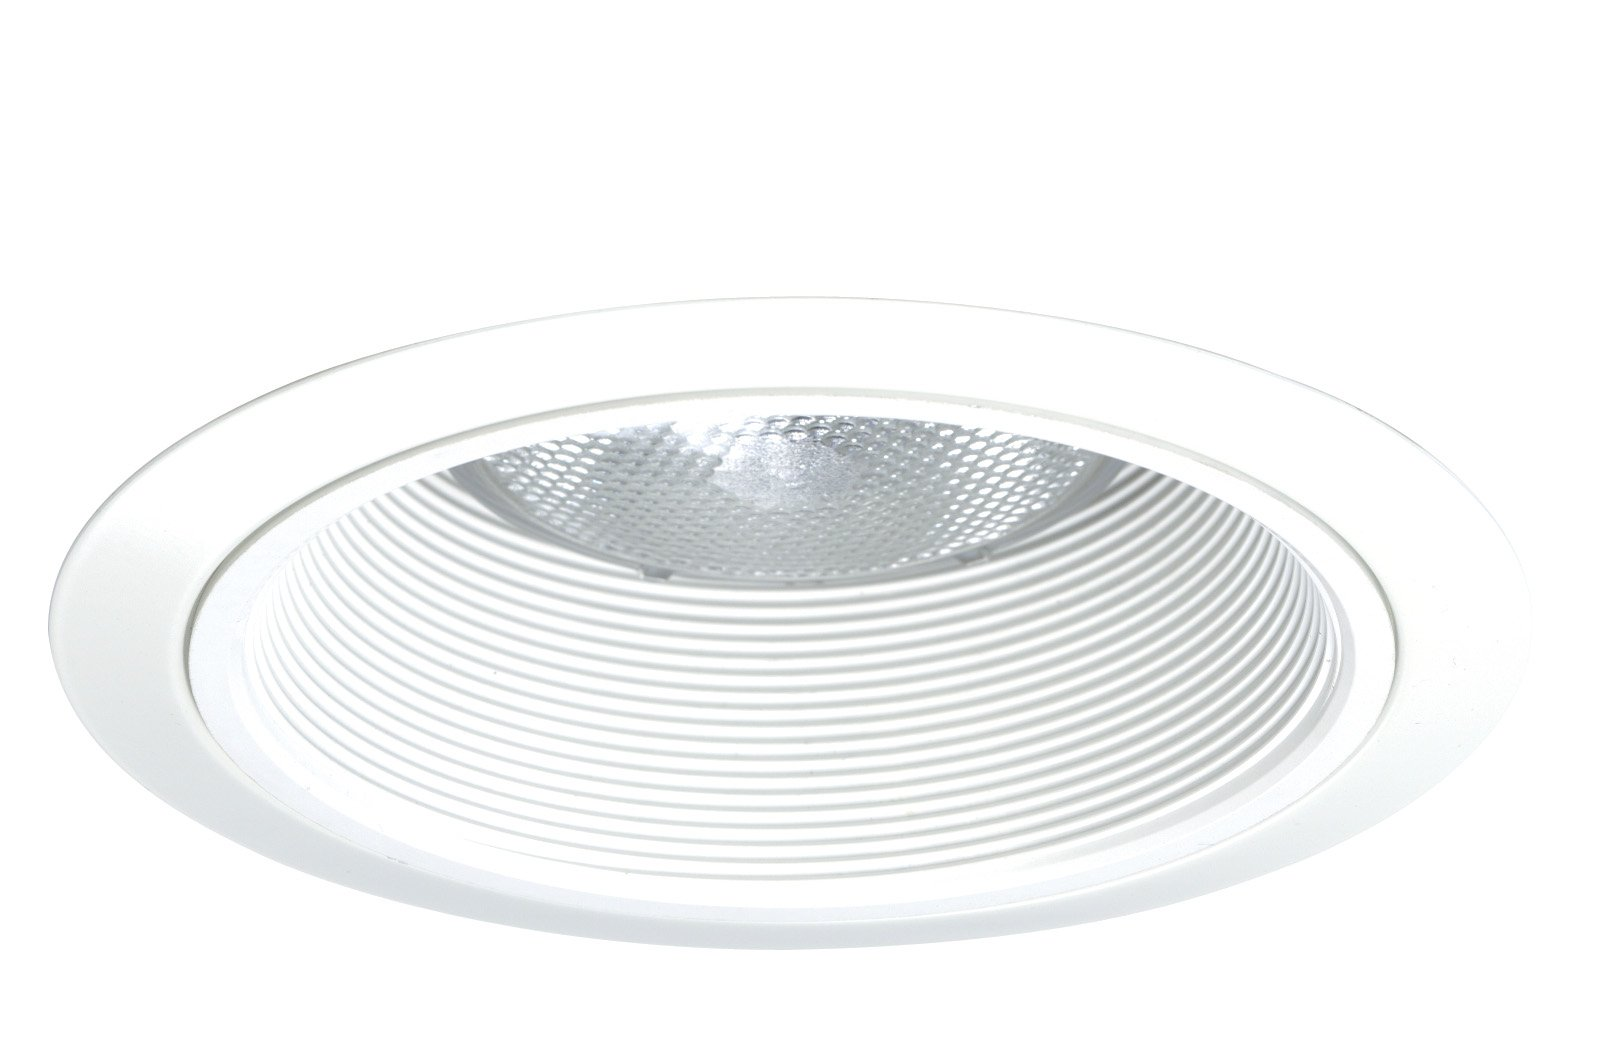 Juno Lighting 24W-WH 6-Inch Tapered Downlight Baffle, White with White Trim